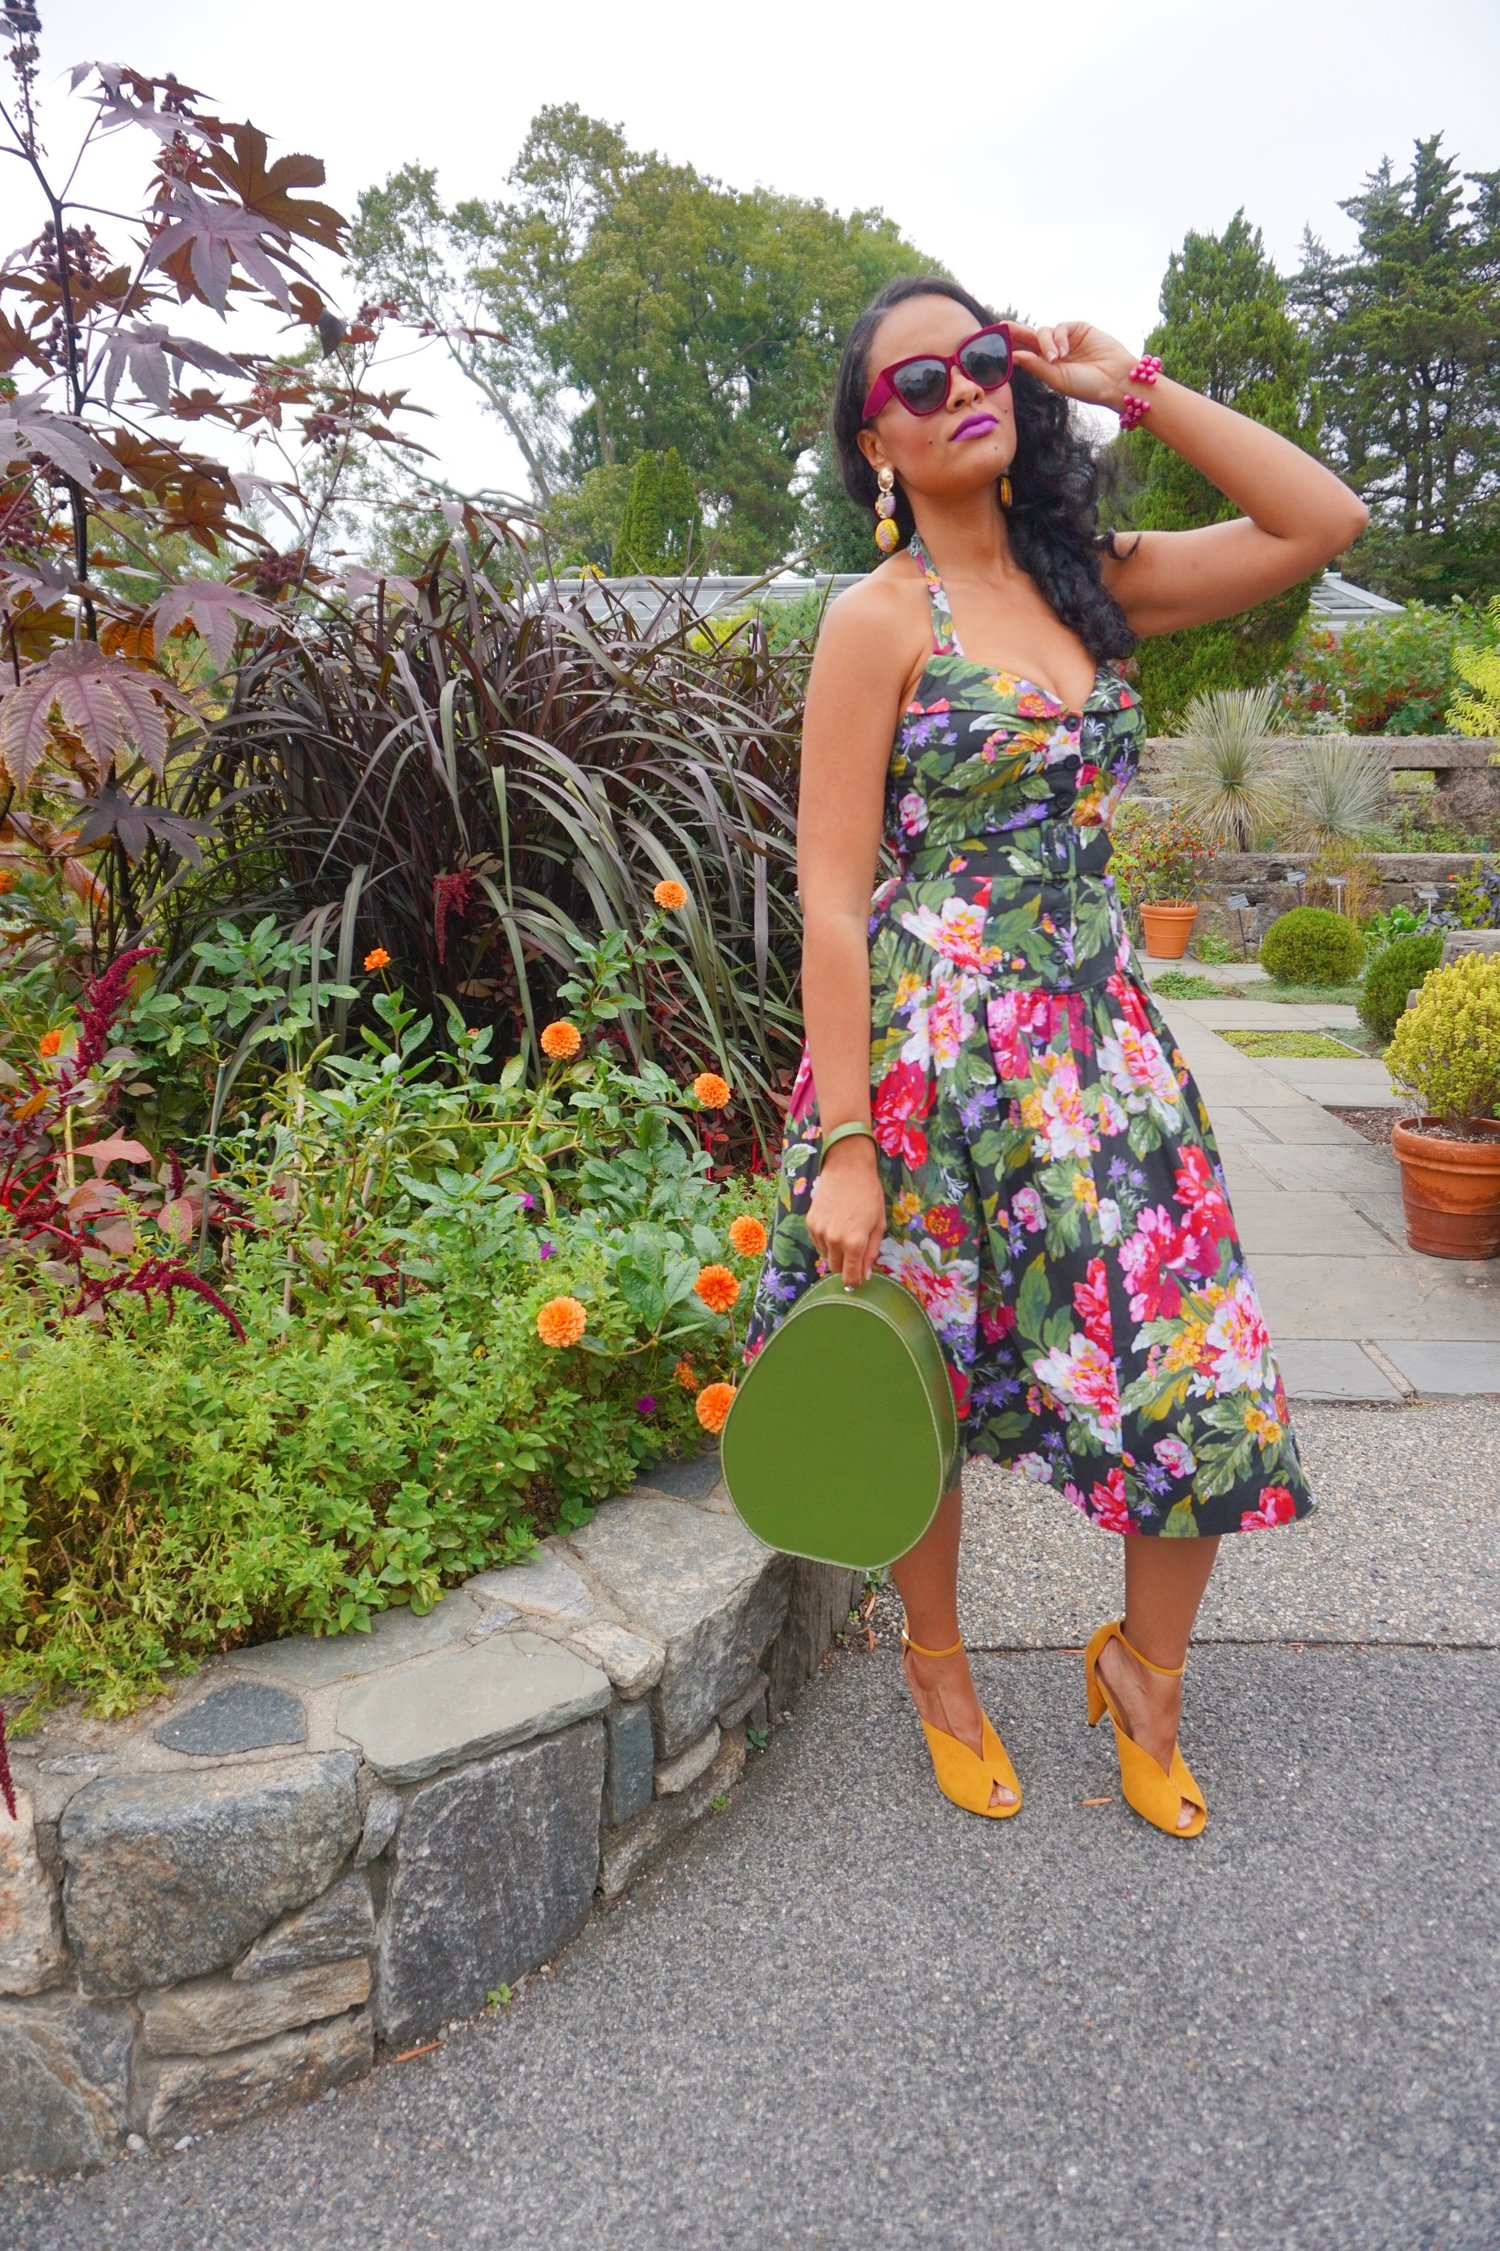 Mixing the decades - Krystle styles a 50s vintage floral halter dress with 40s inspired modern heels in a mustard color, tiered fabric button earrings, velvet sunnies in a deep wine color, and vintage beaded bracelet in purple that belonged to her mom. A vintage train case in an avocado green serves as her purse. <3